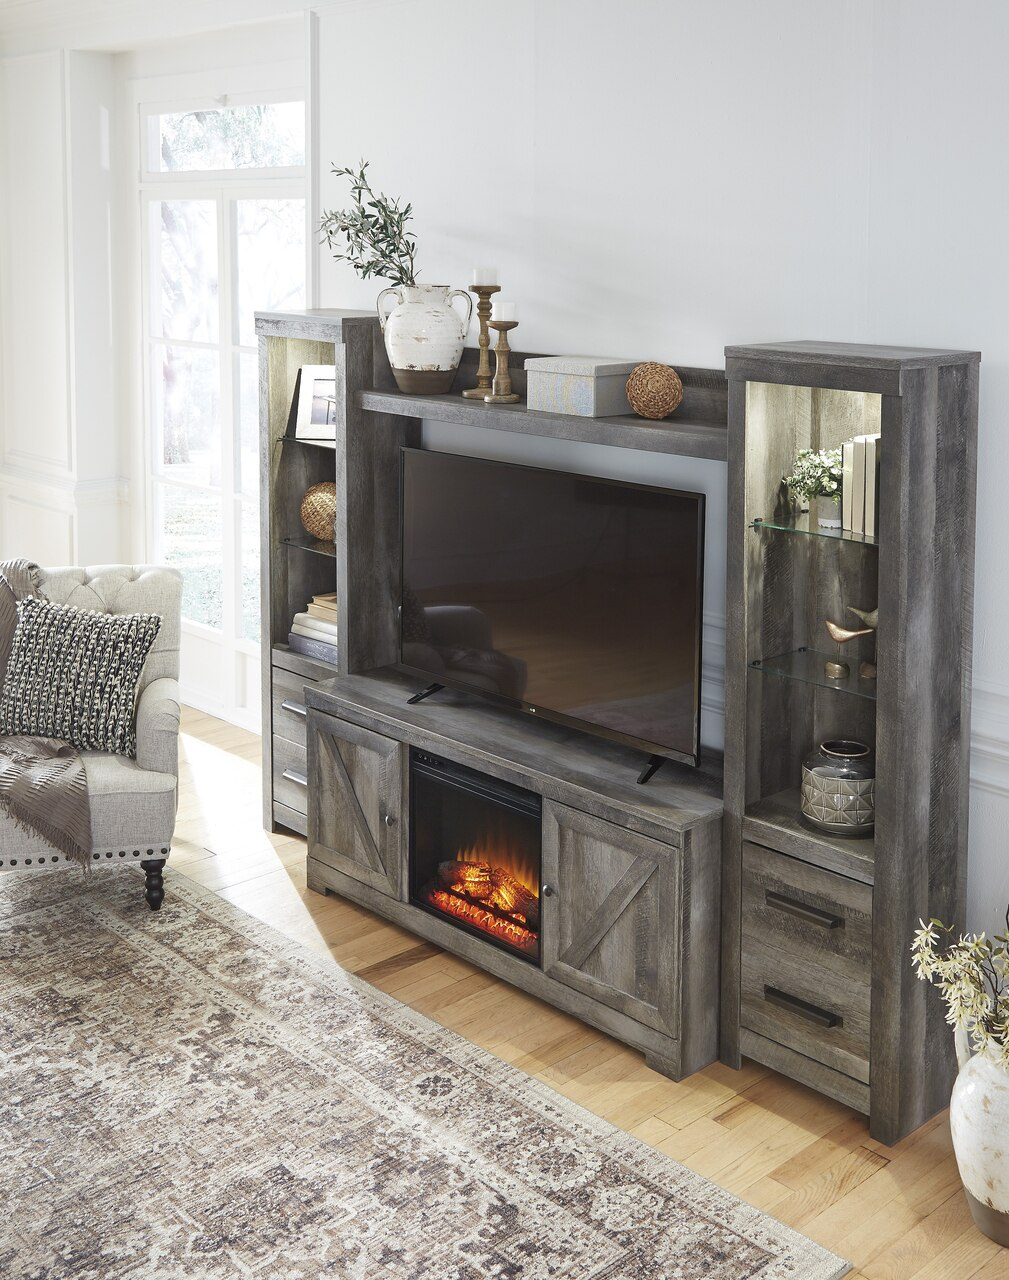 Fireplace Wall Unit Elegant Dextre 4 Piece Wall Unit with Fireplace